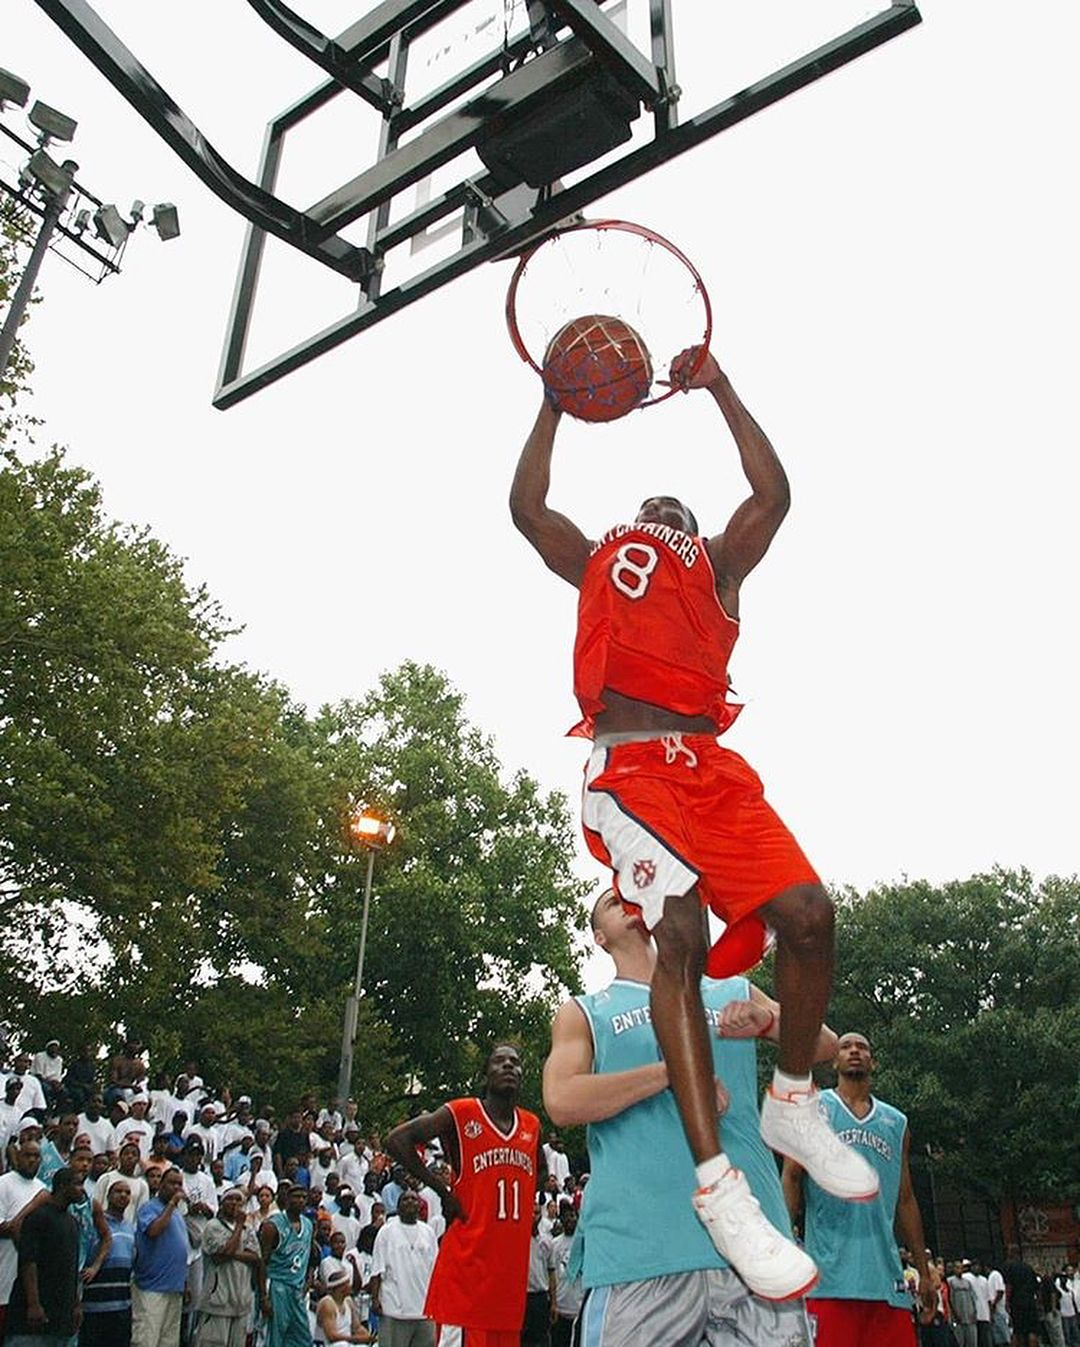 69bd6bb1ecd Kobe in Rucker Park - Follow (@hoopsofgoats) For Quality Daily Content! Make